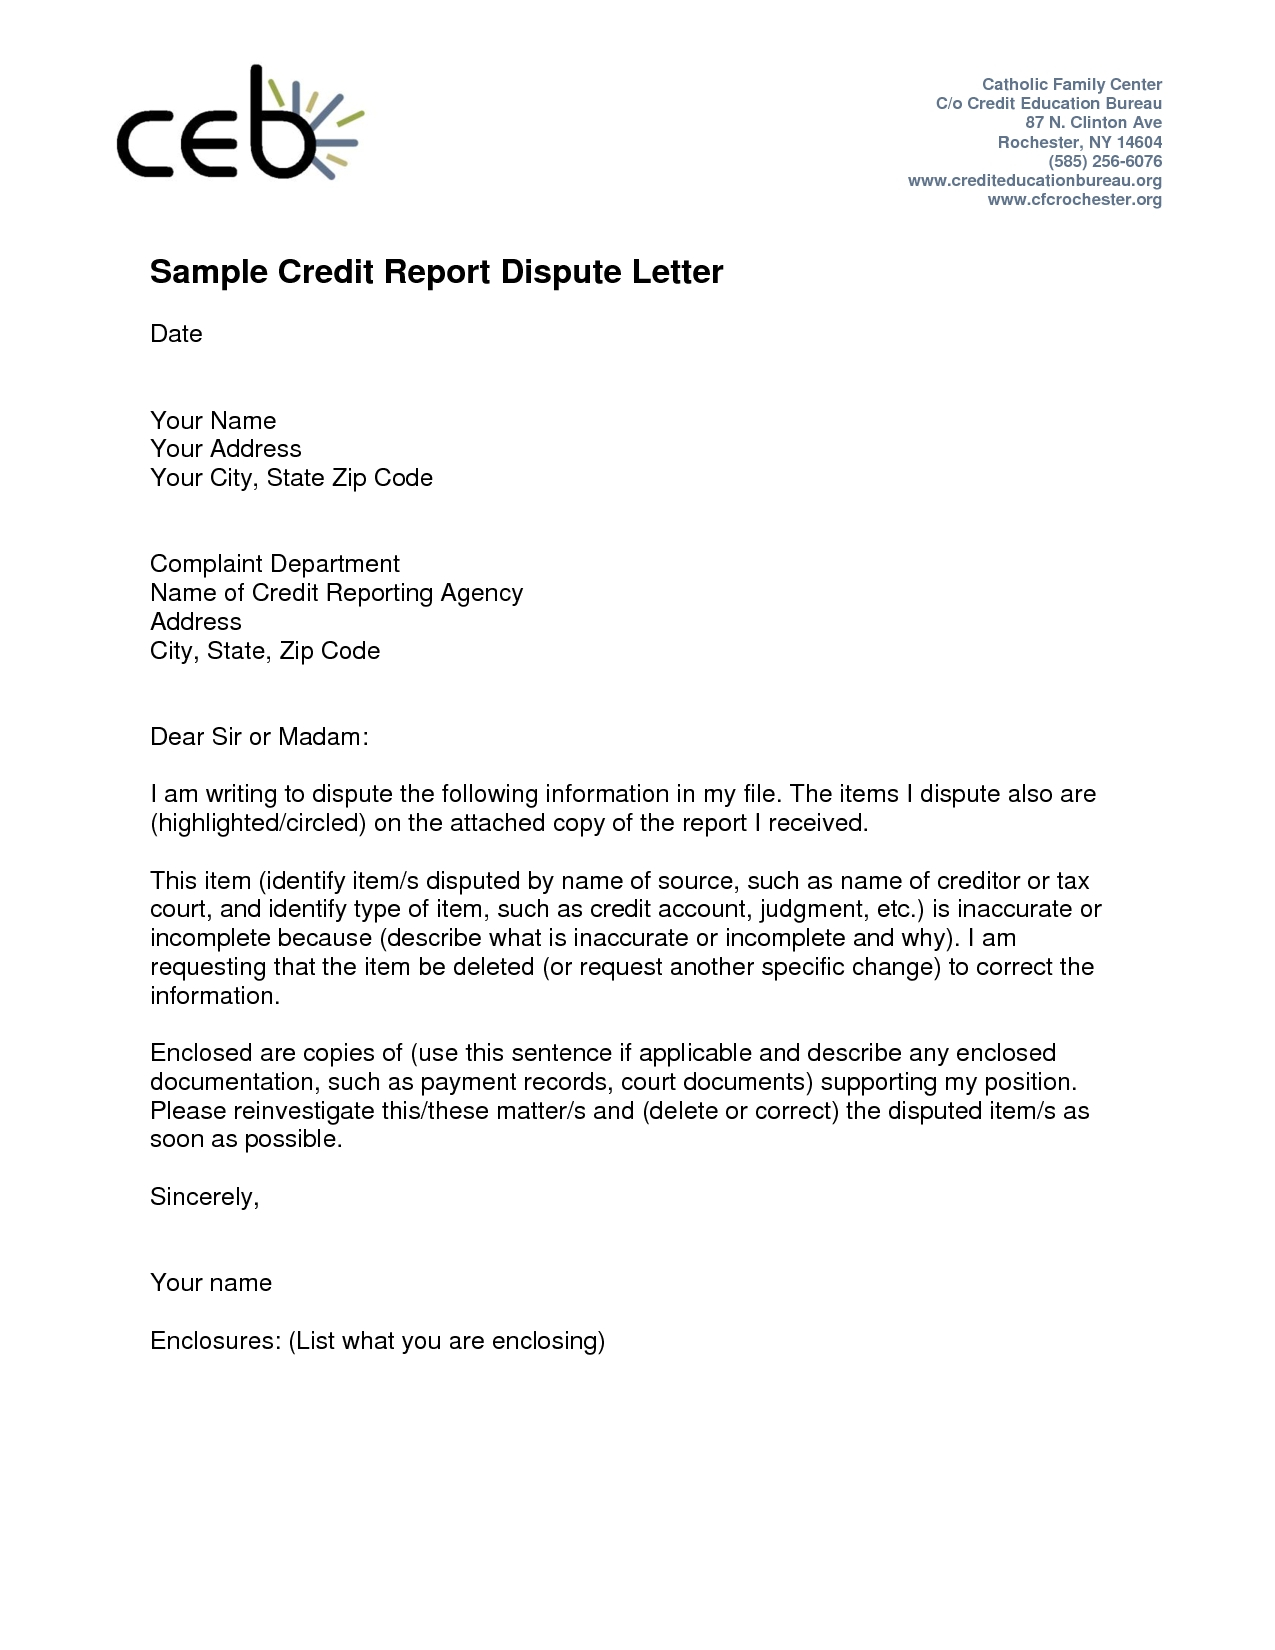 Credit Dispute Letter Template Free - Credit Dispute Letter Templates Acurnamedia